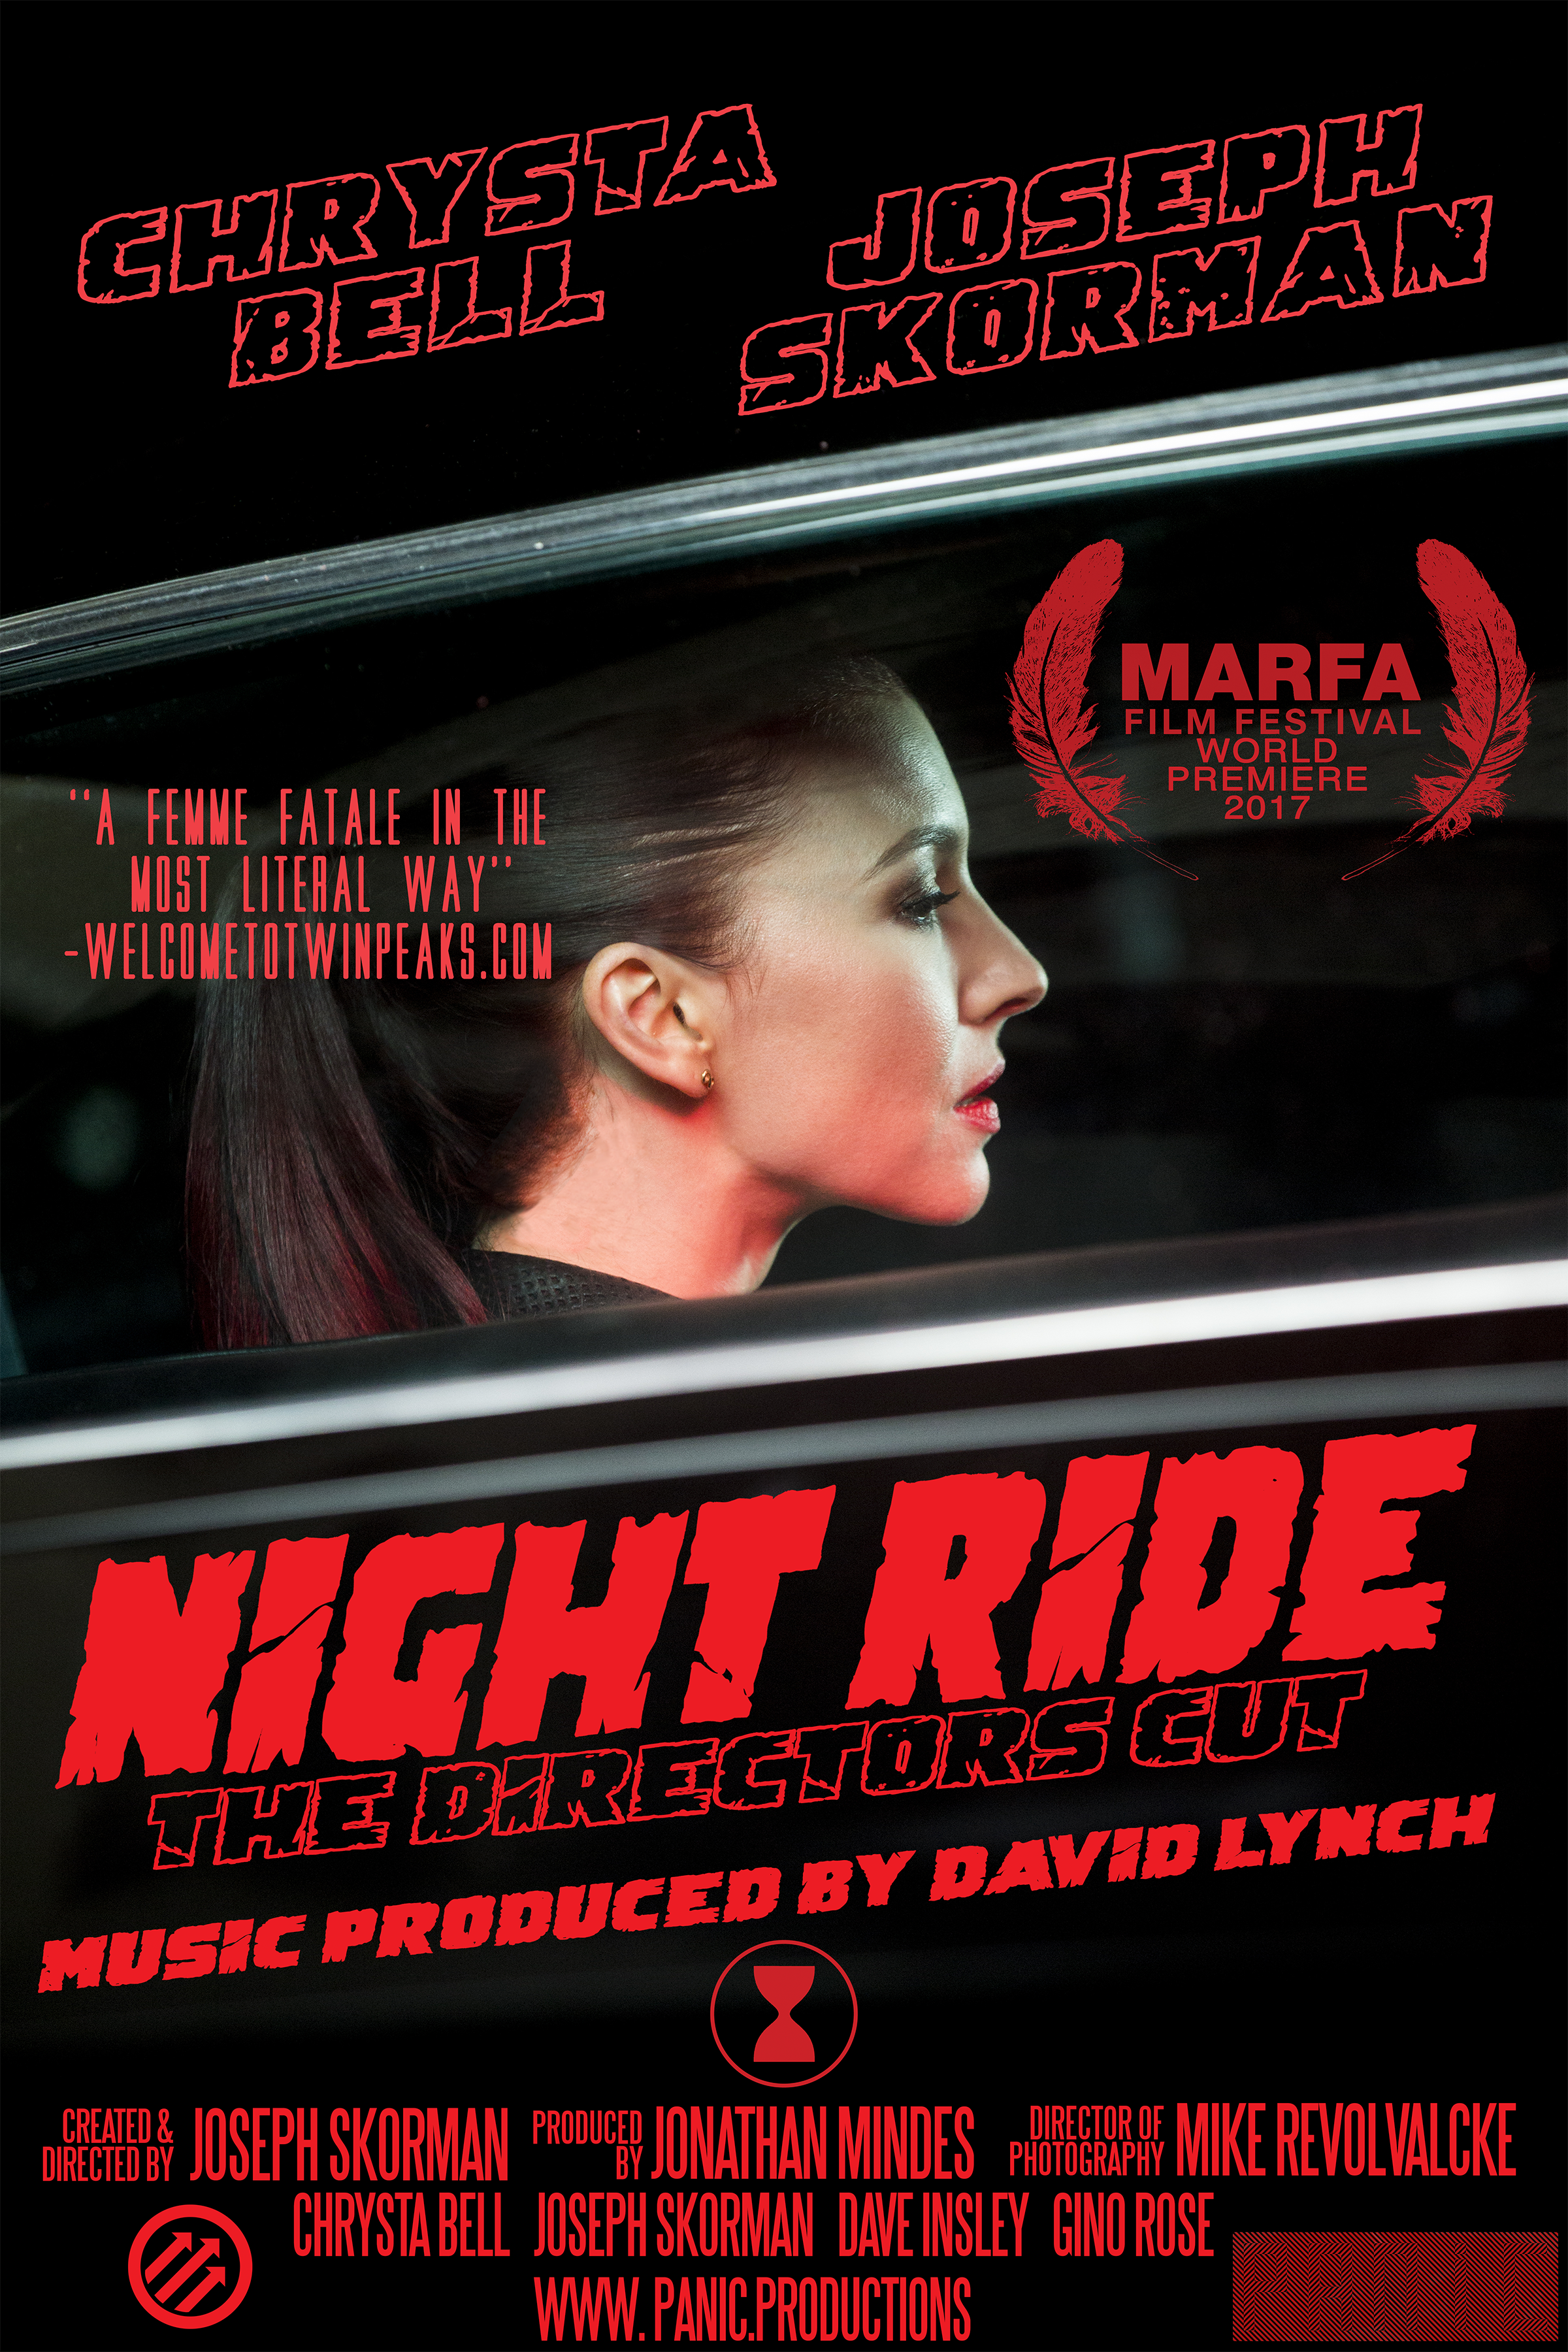 chrysta_bell_david_lynch_night_ride_the_directors_cut_movie_poster_for_panic_productions_created_by_joseph_skorman